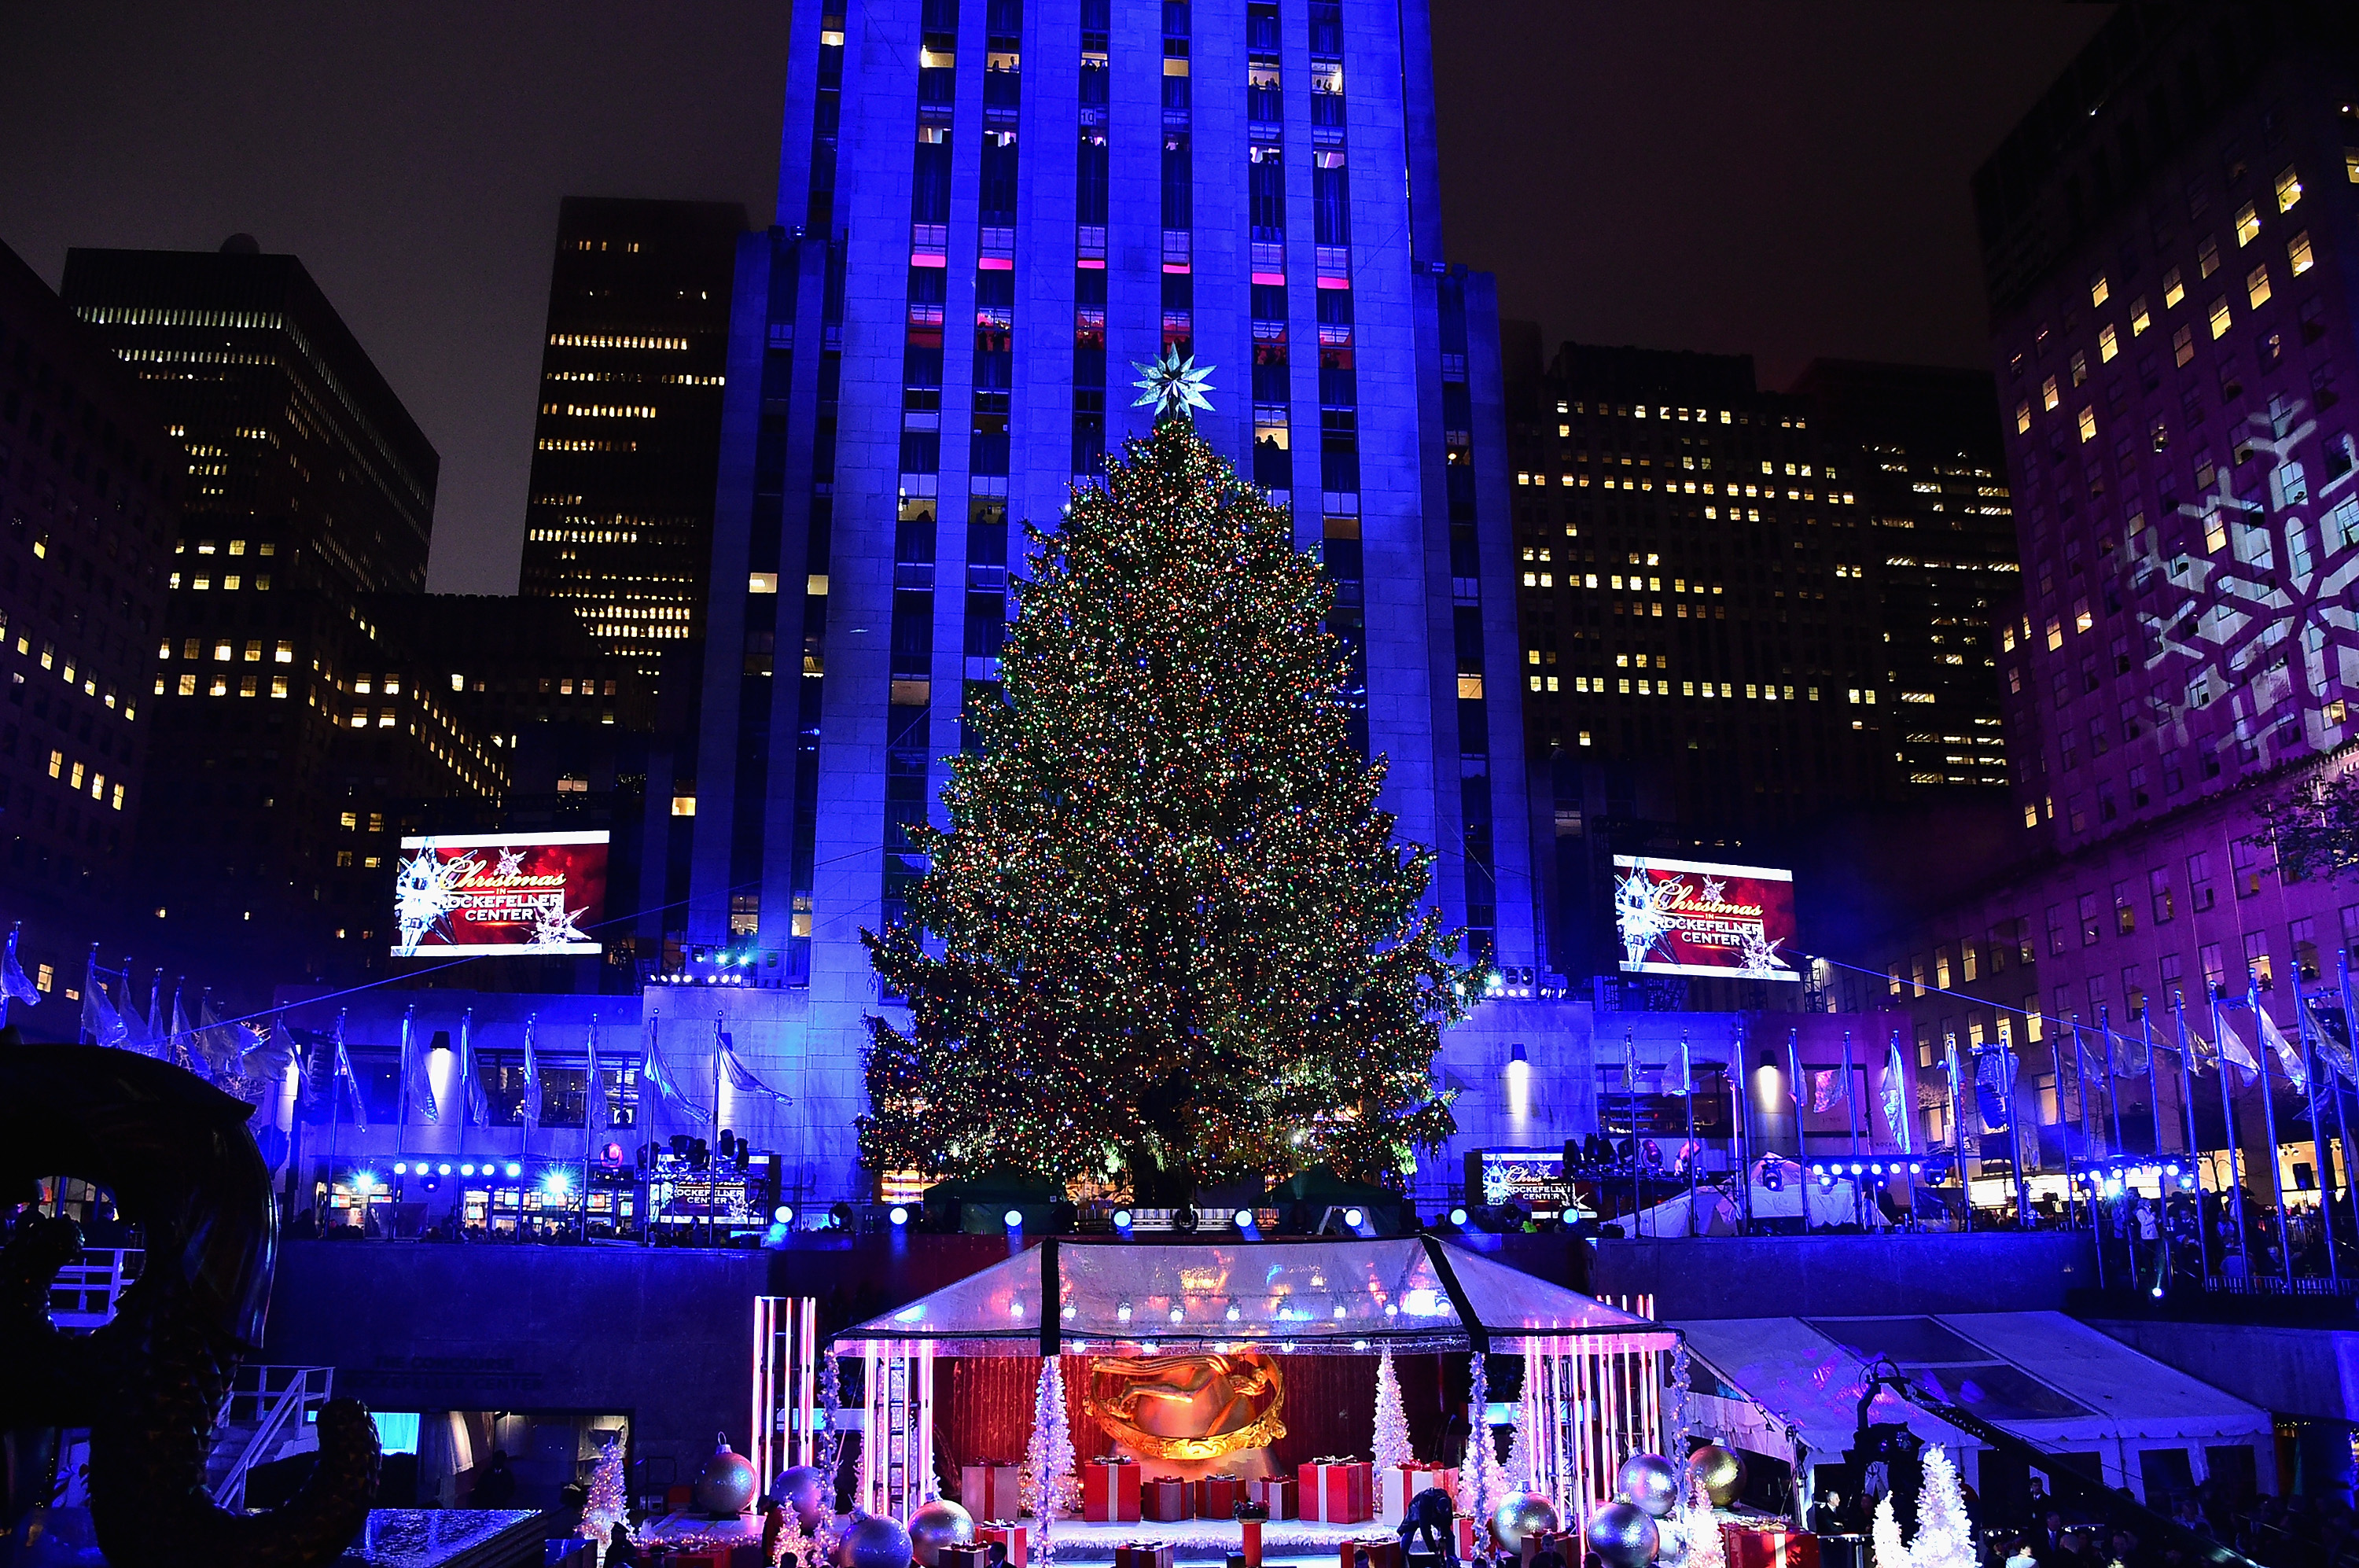 Rockefeller Center Christmas Tree Lighting 2016: Where To Watch ...